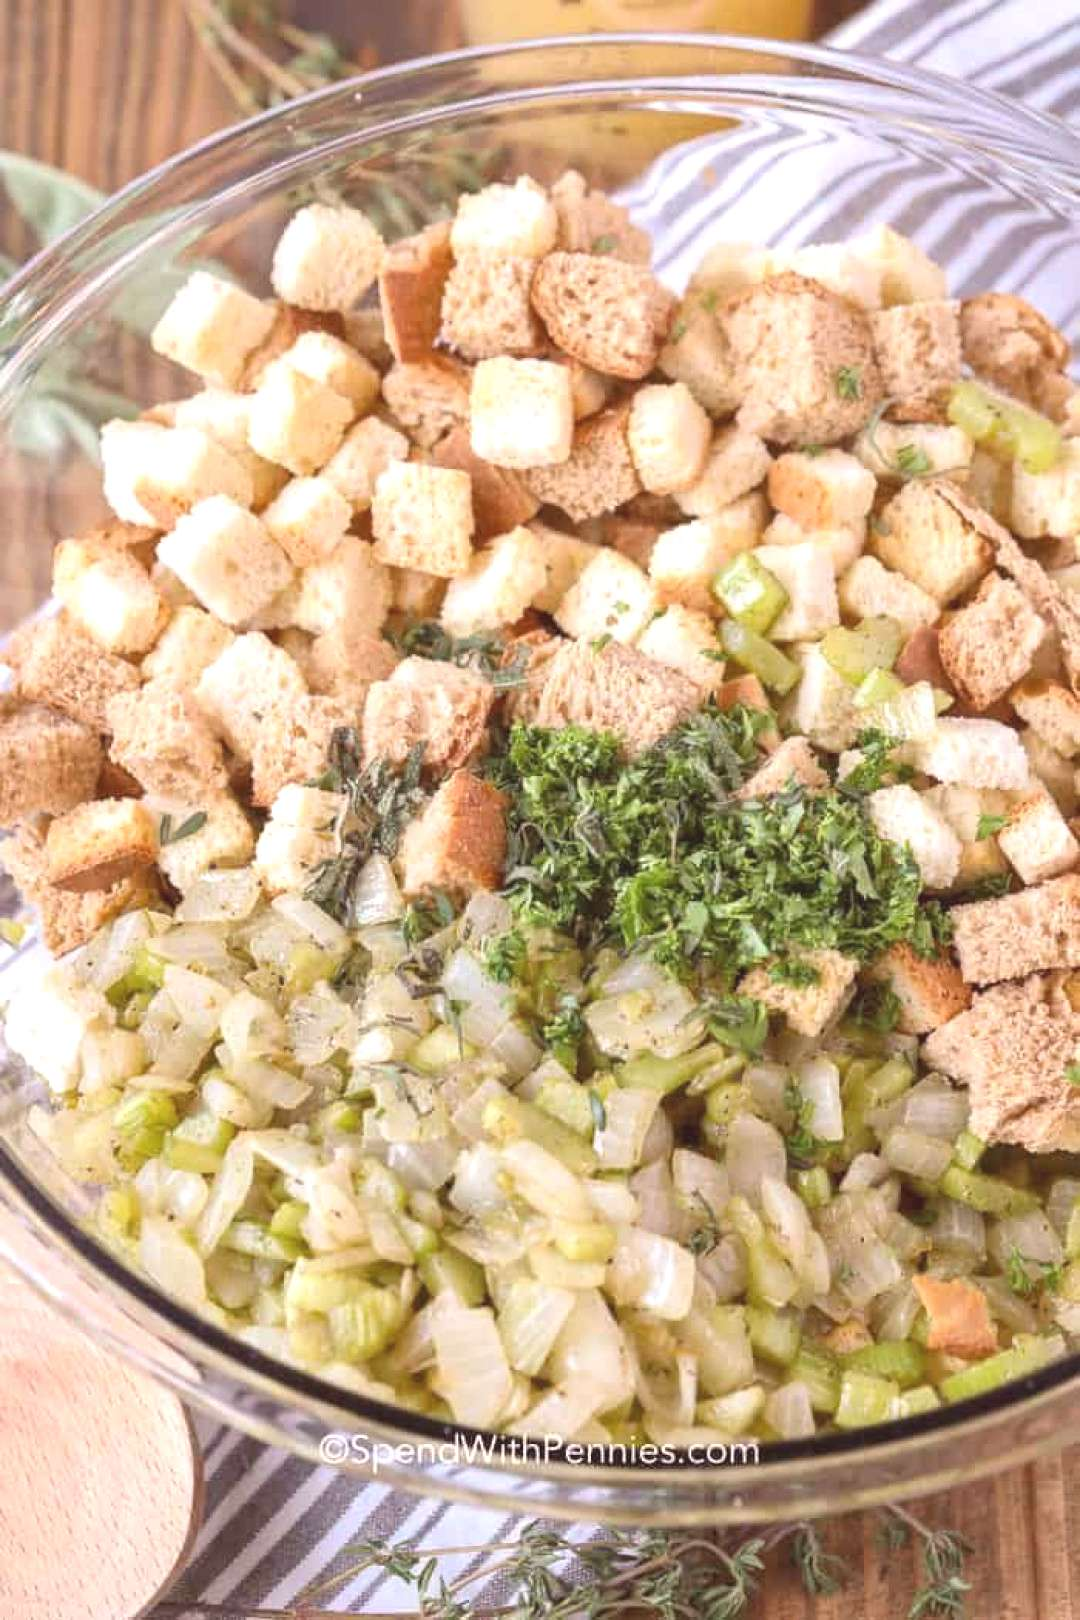 Easy Stuffing Recipe - Spend With Pennies -  This easy stuffing recipe is the perfect side dish for